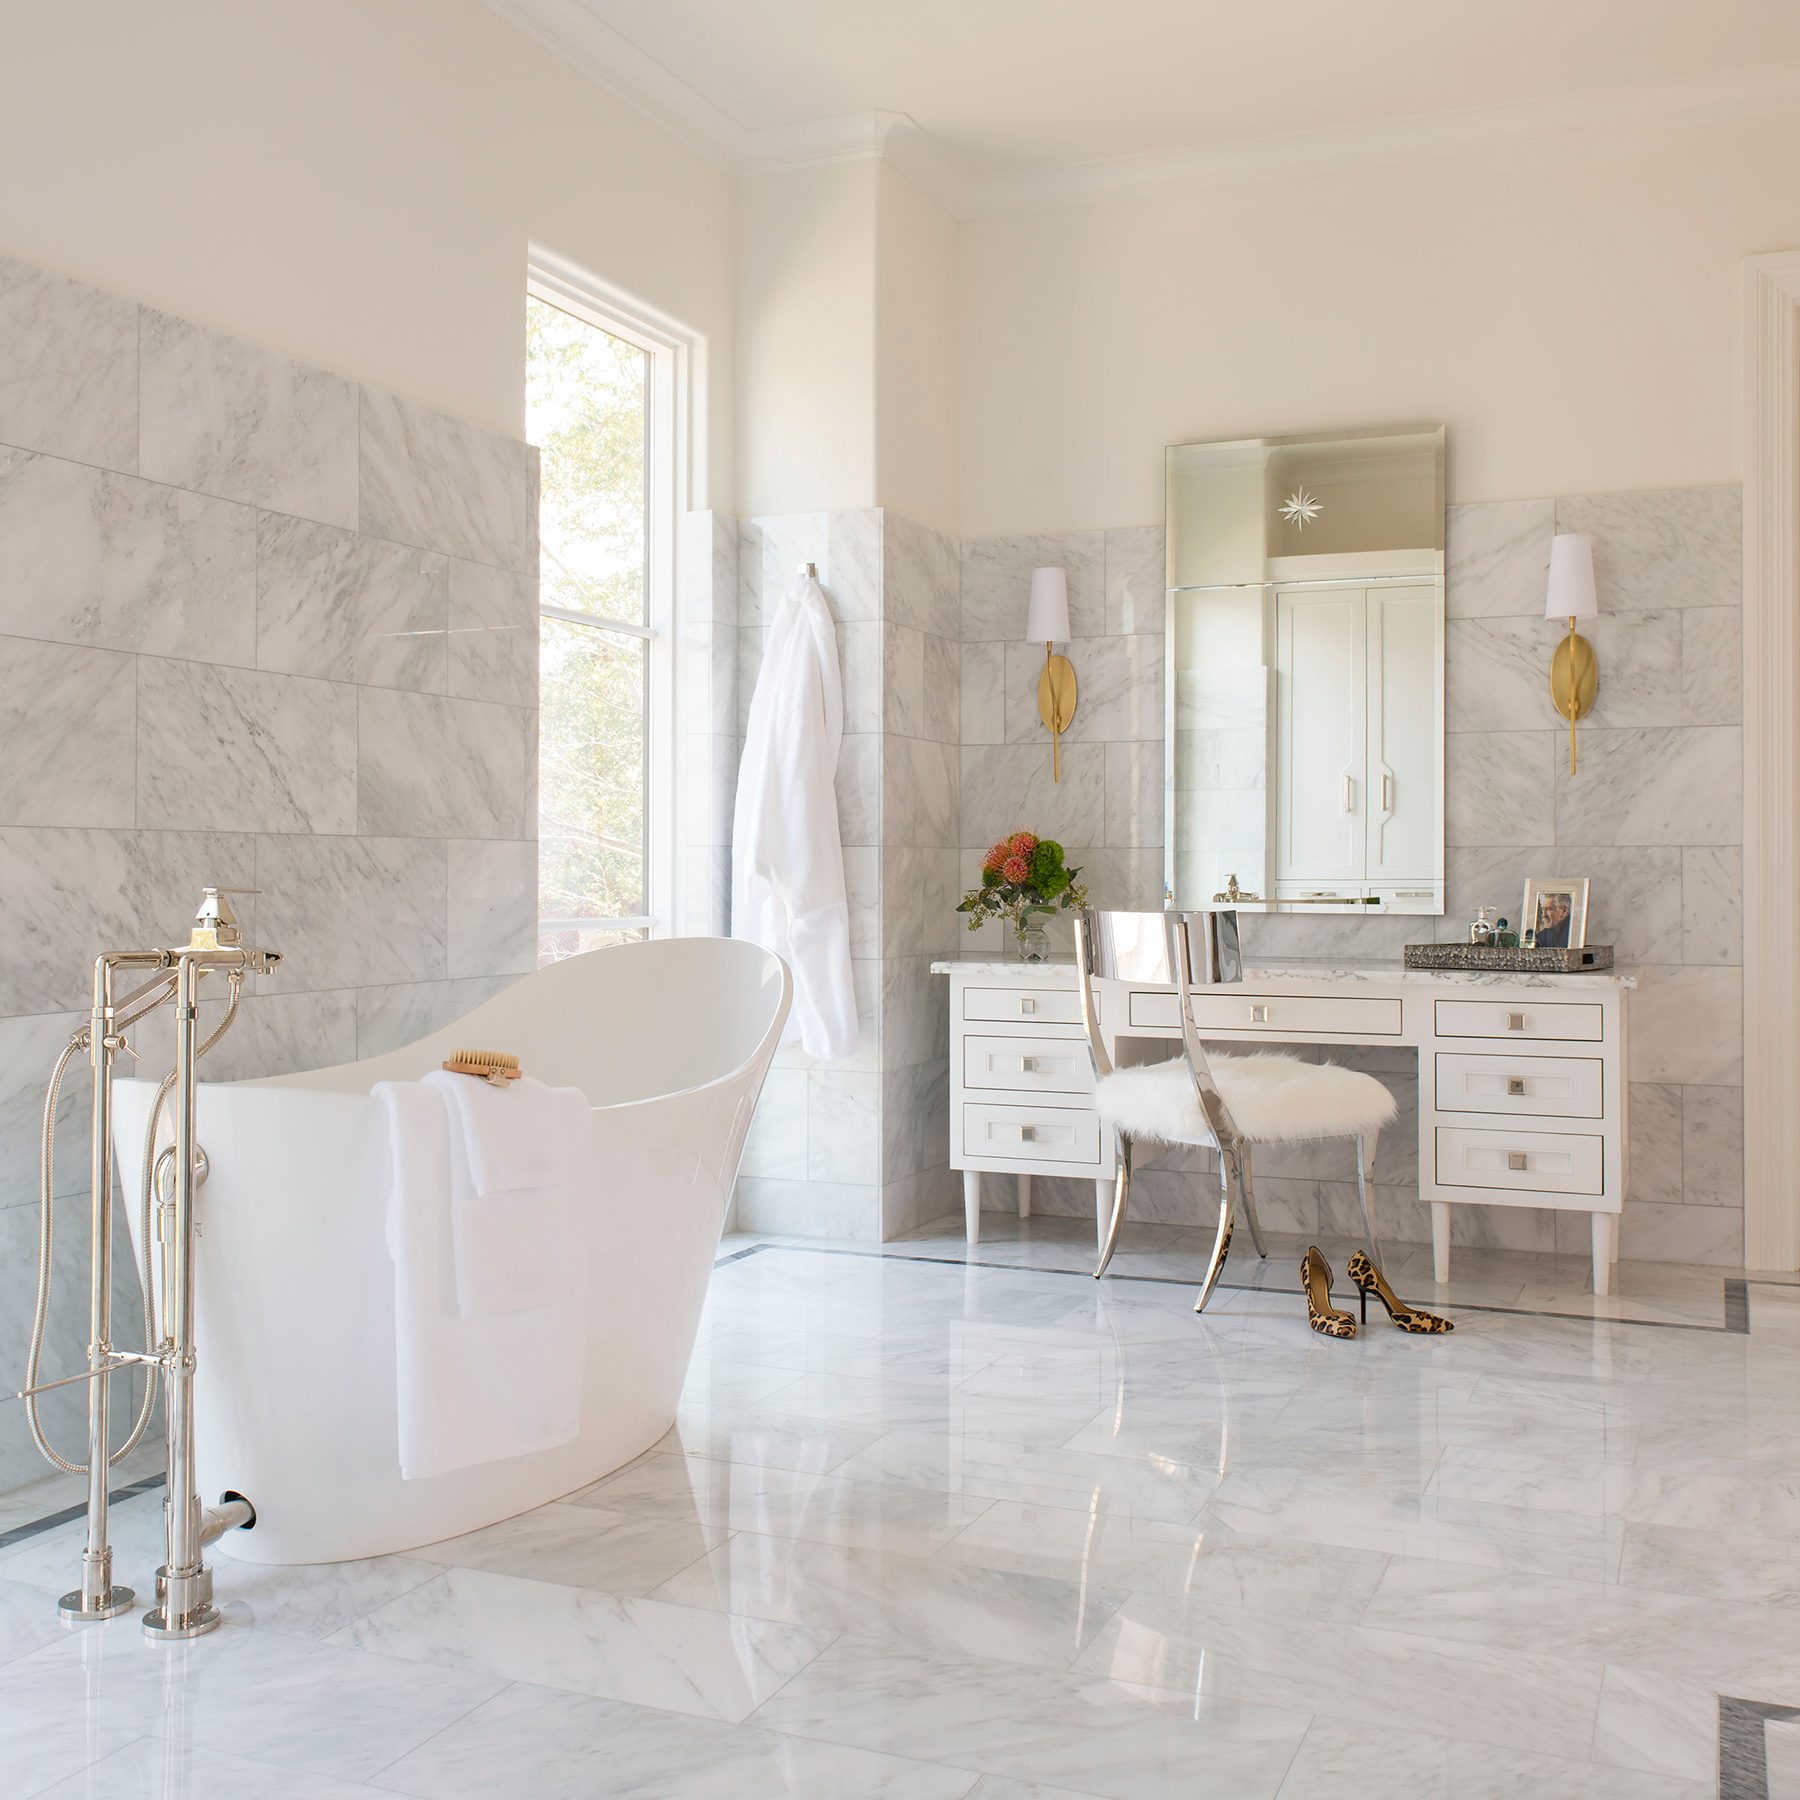 Her-masterbath-makeup-+-tub